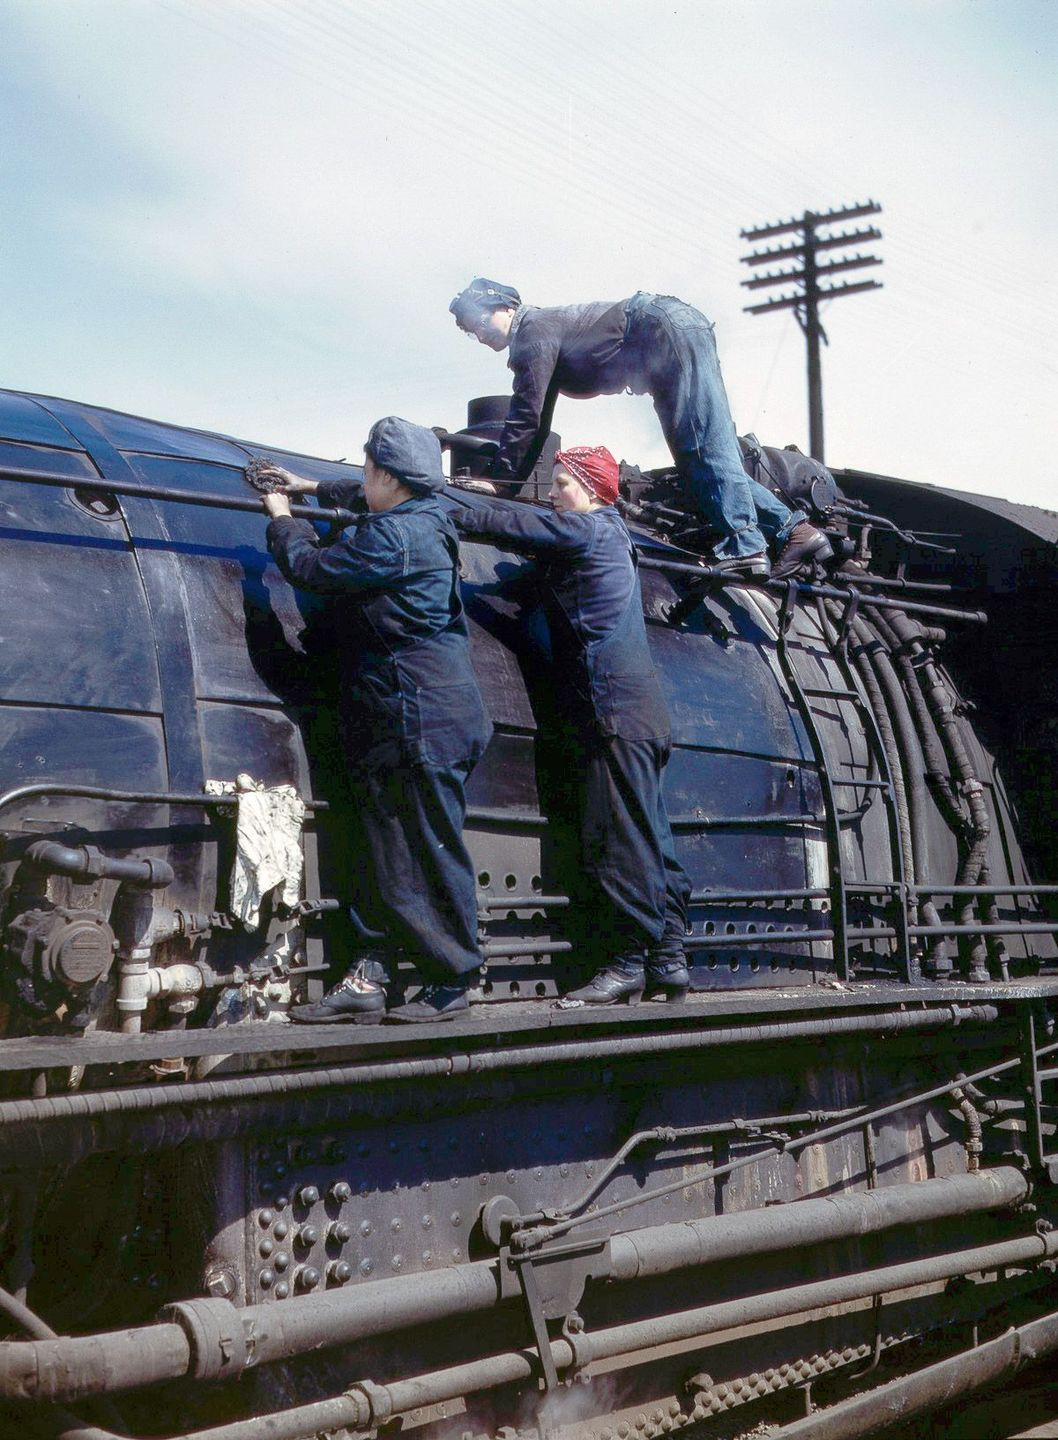 Wipers clean an H-class locomotive.